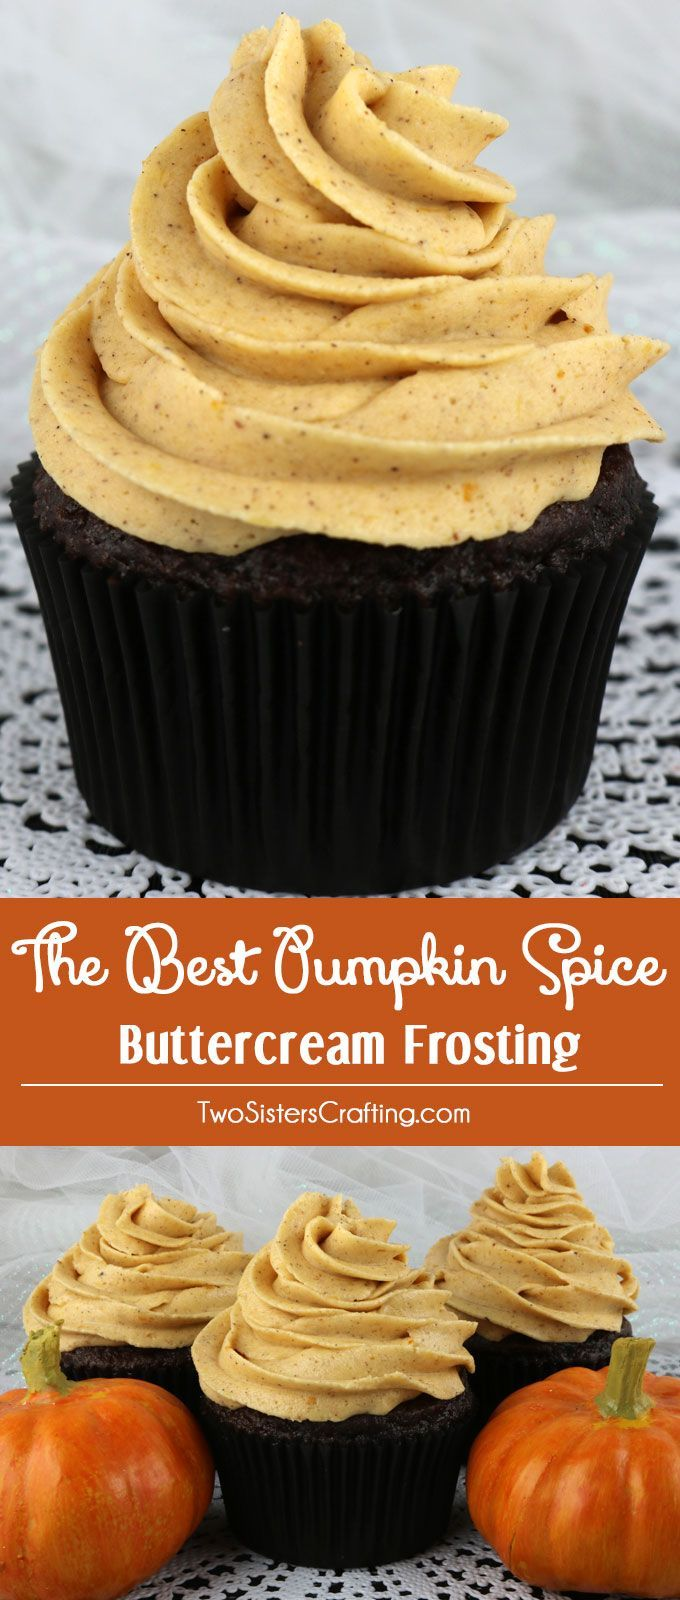 The Best Pumpkin Spice Buttercream Frosting - Sweet, creamy, pumpkin-y, spicy…